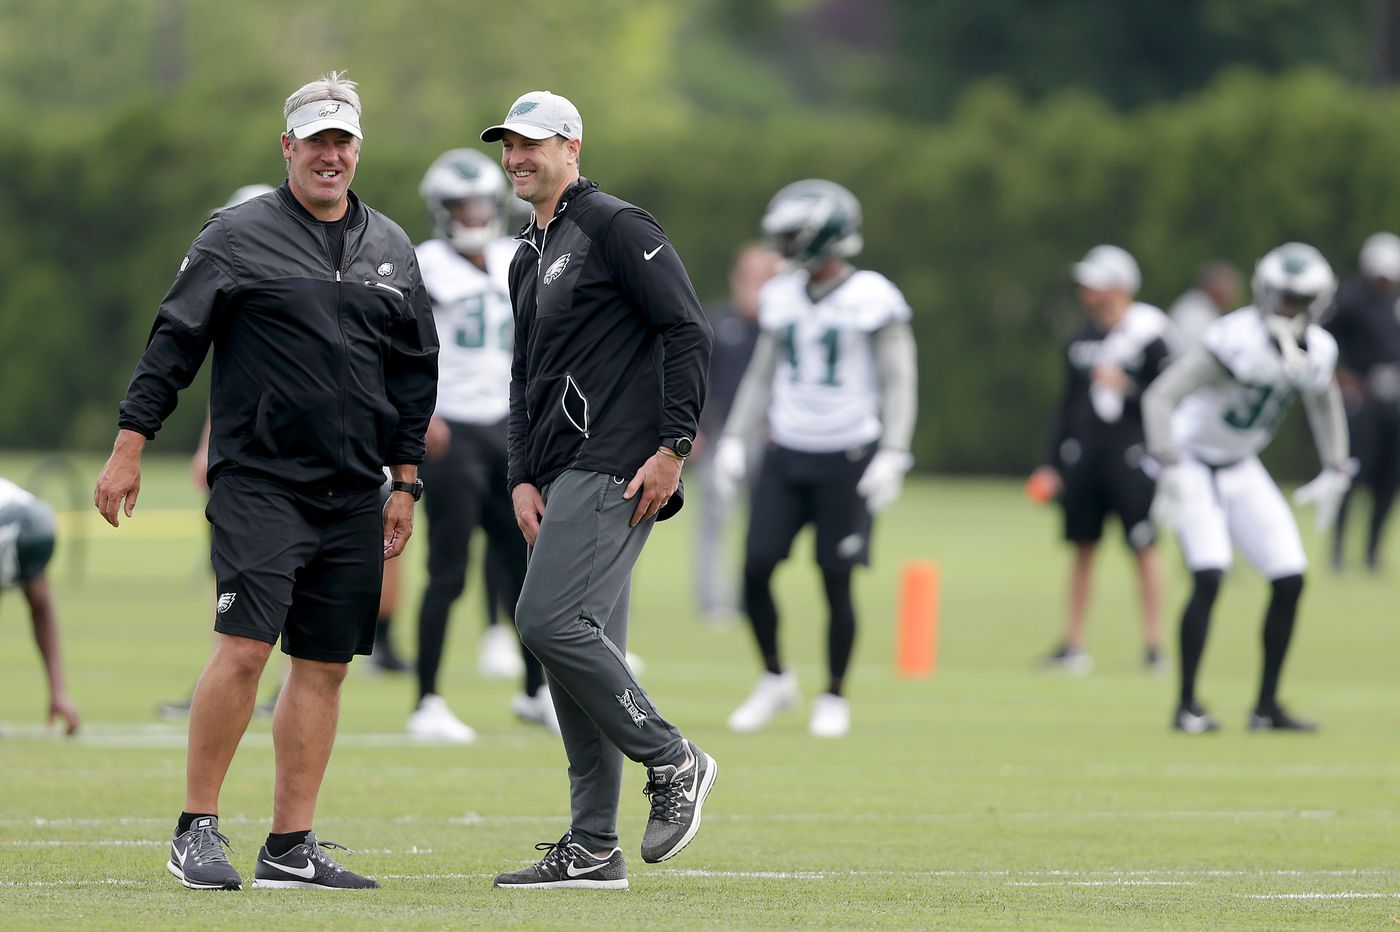 As Eagles face disaster, Doug Pederson wants more from himself and team leaders. Will it be enough? | Marcus Hayes